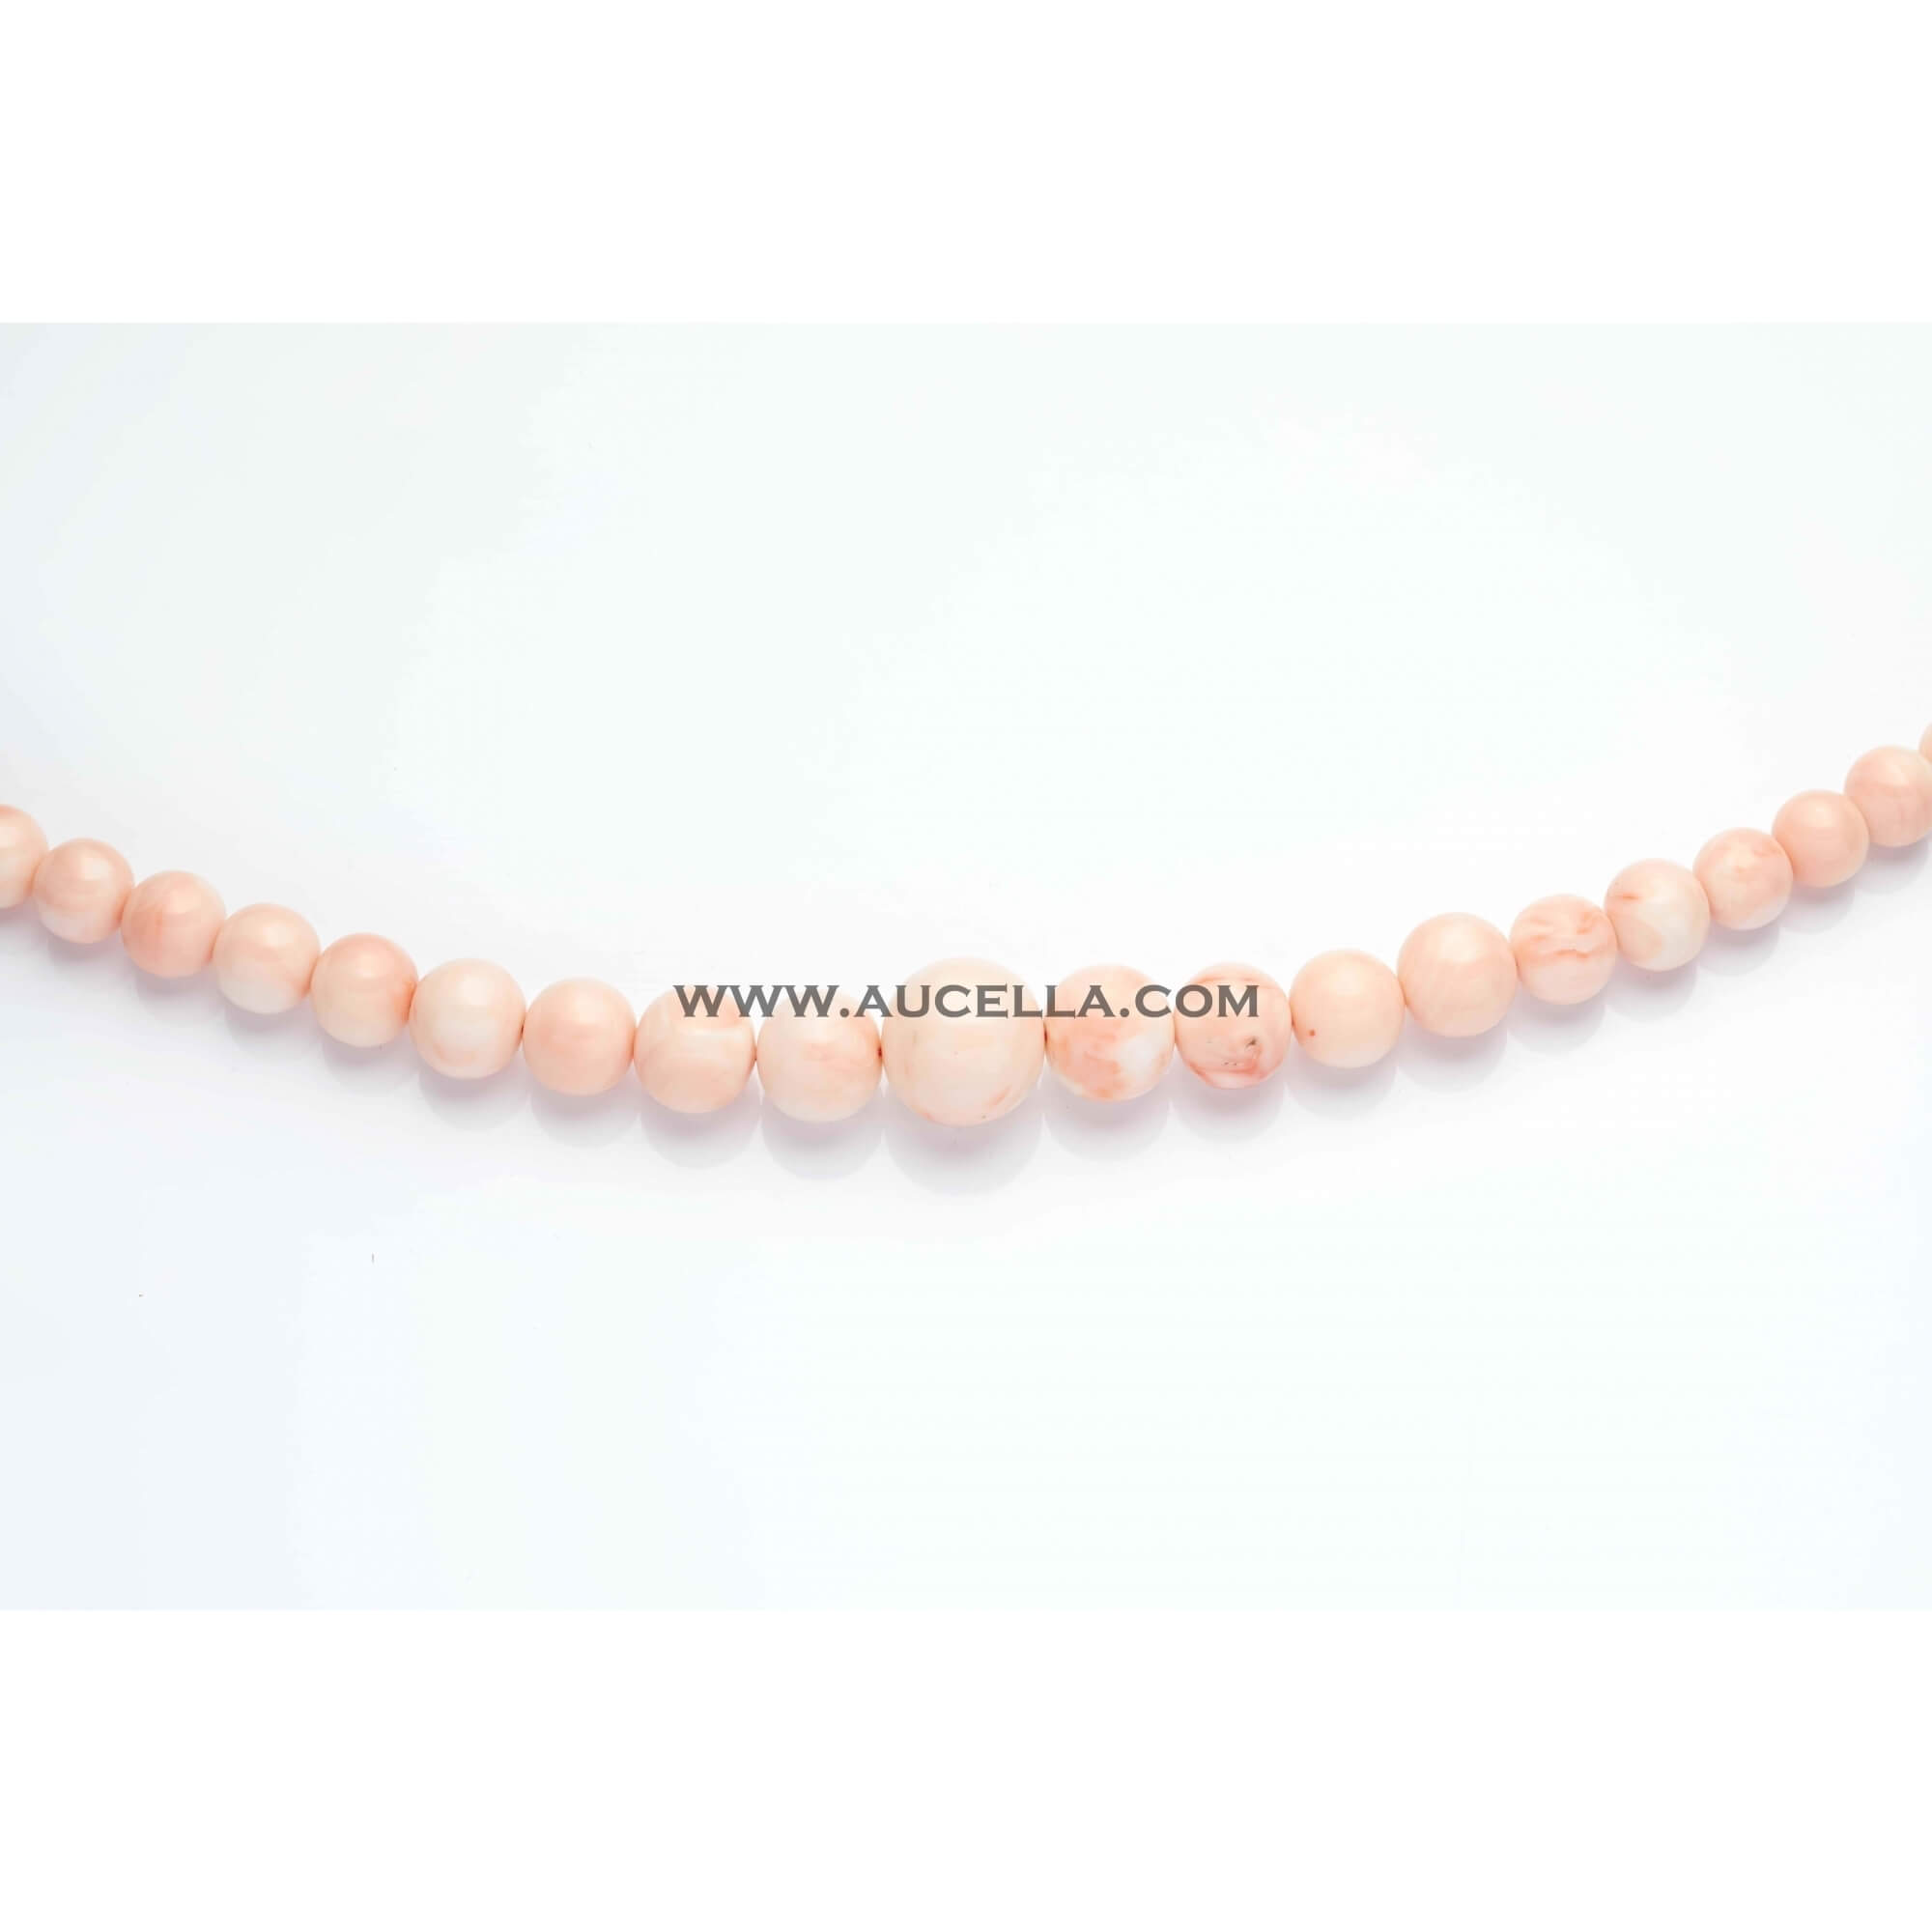 Natural pink coral beads shape graduated